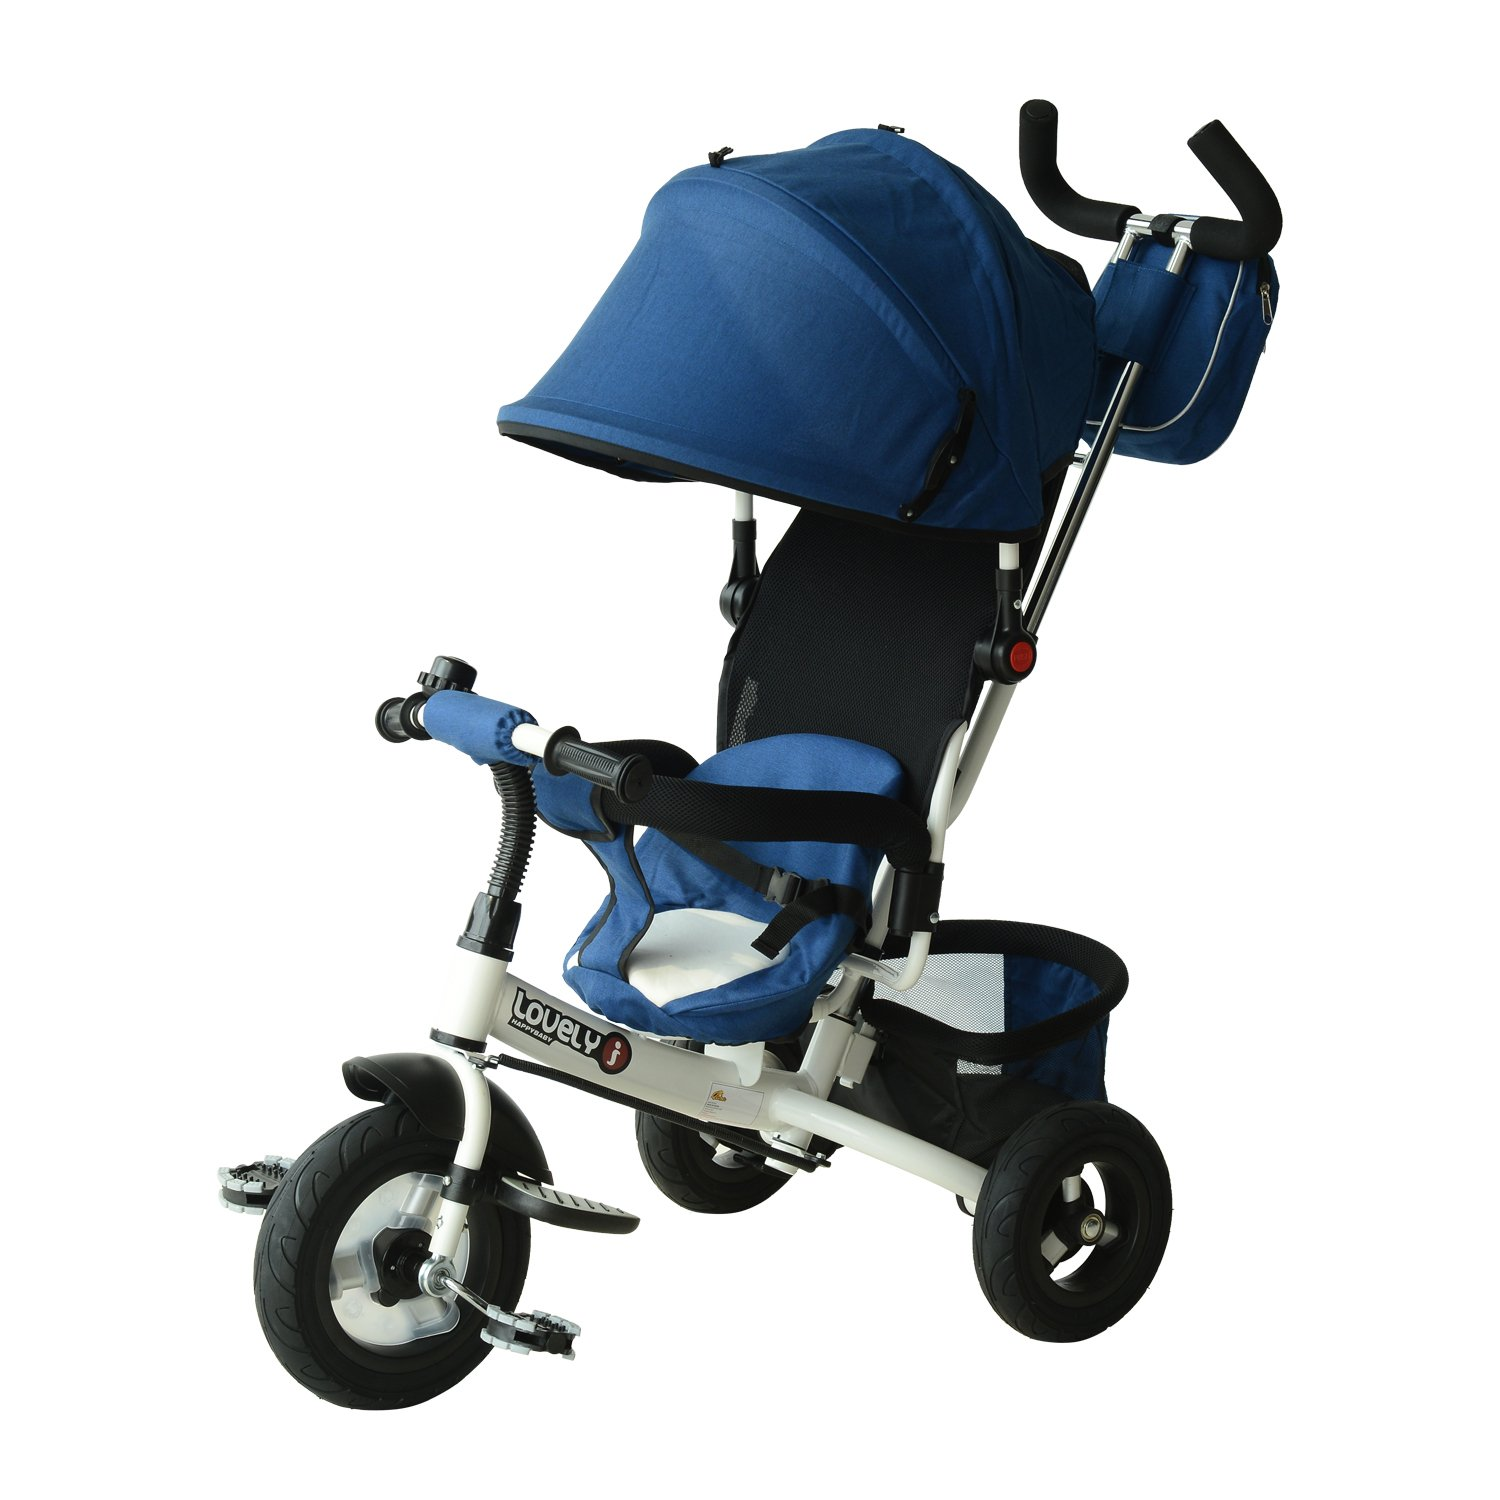 Qaba 2-in-1 Lightweight Steel Adjustable Convertible Tricycle Stroller - Blue by Qaba